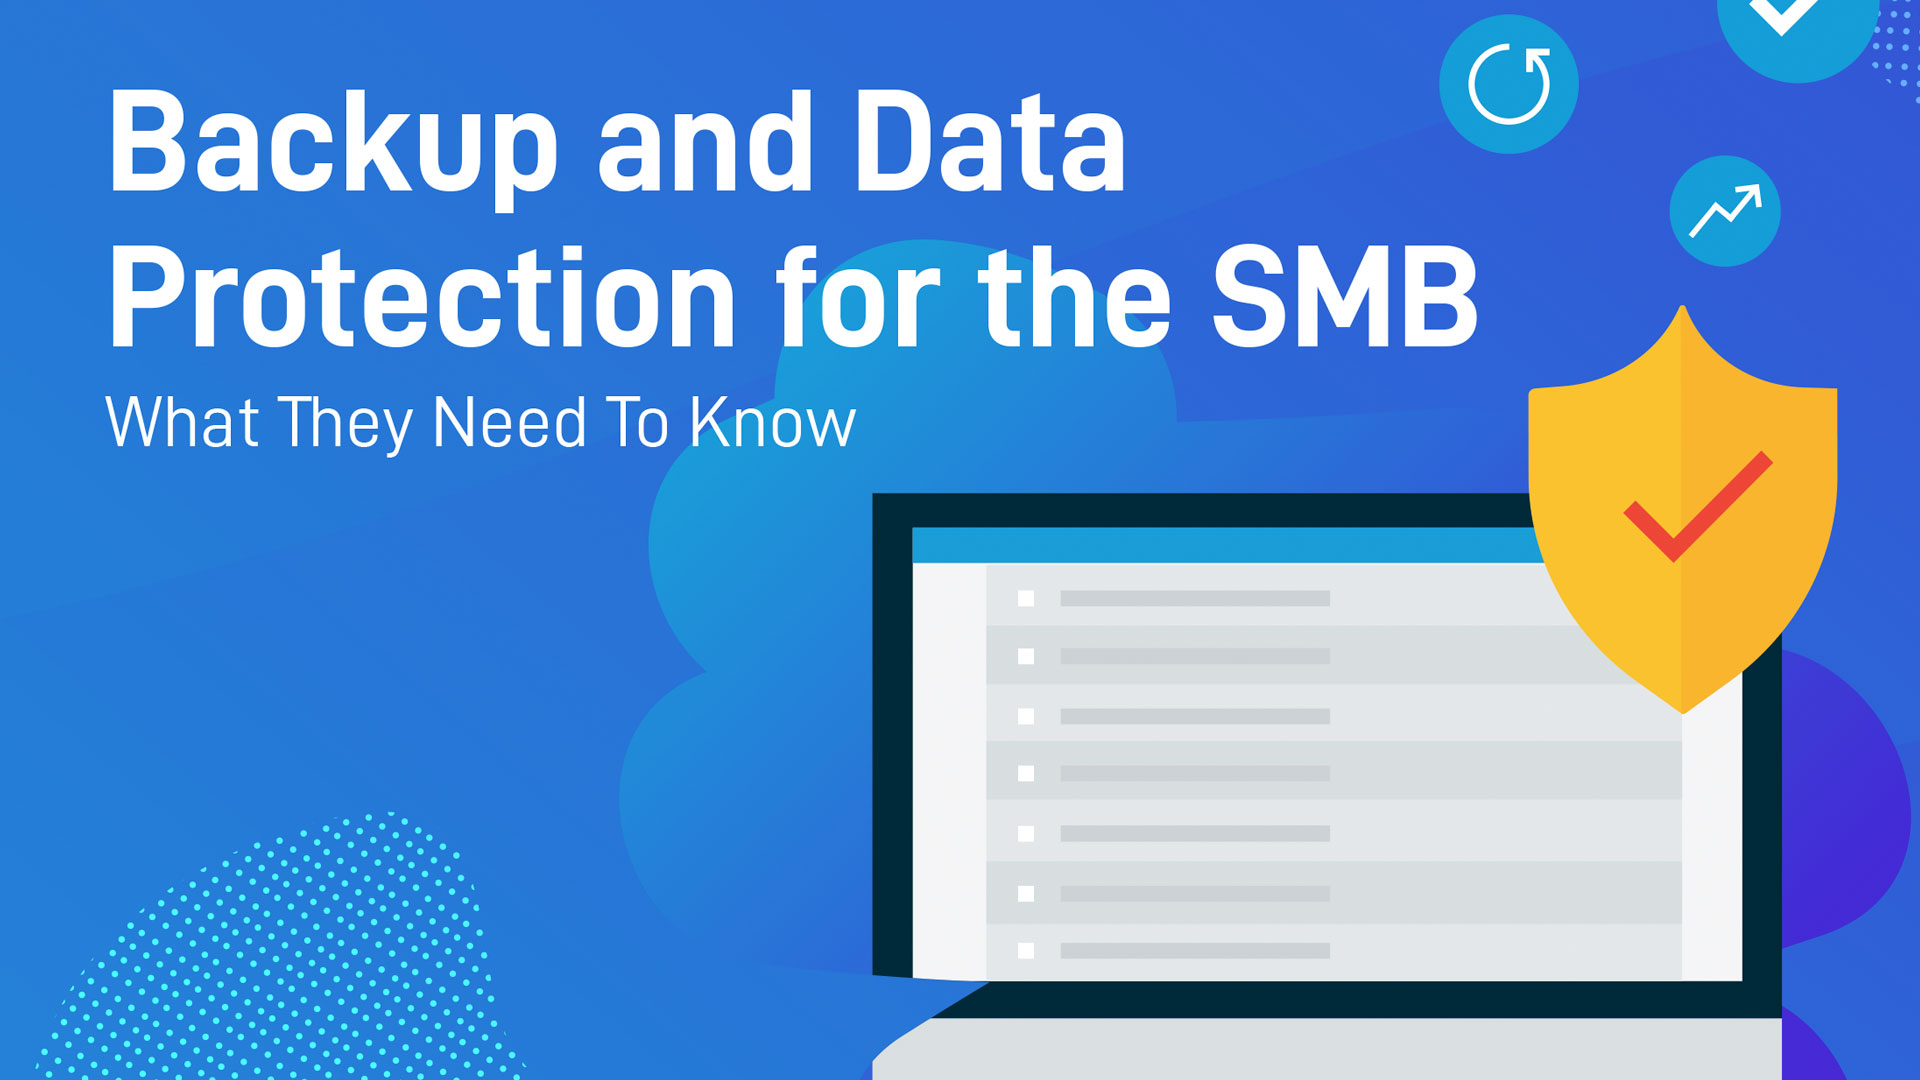 Backup and Data Protection for the SMB